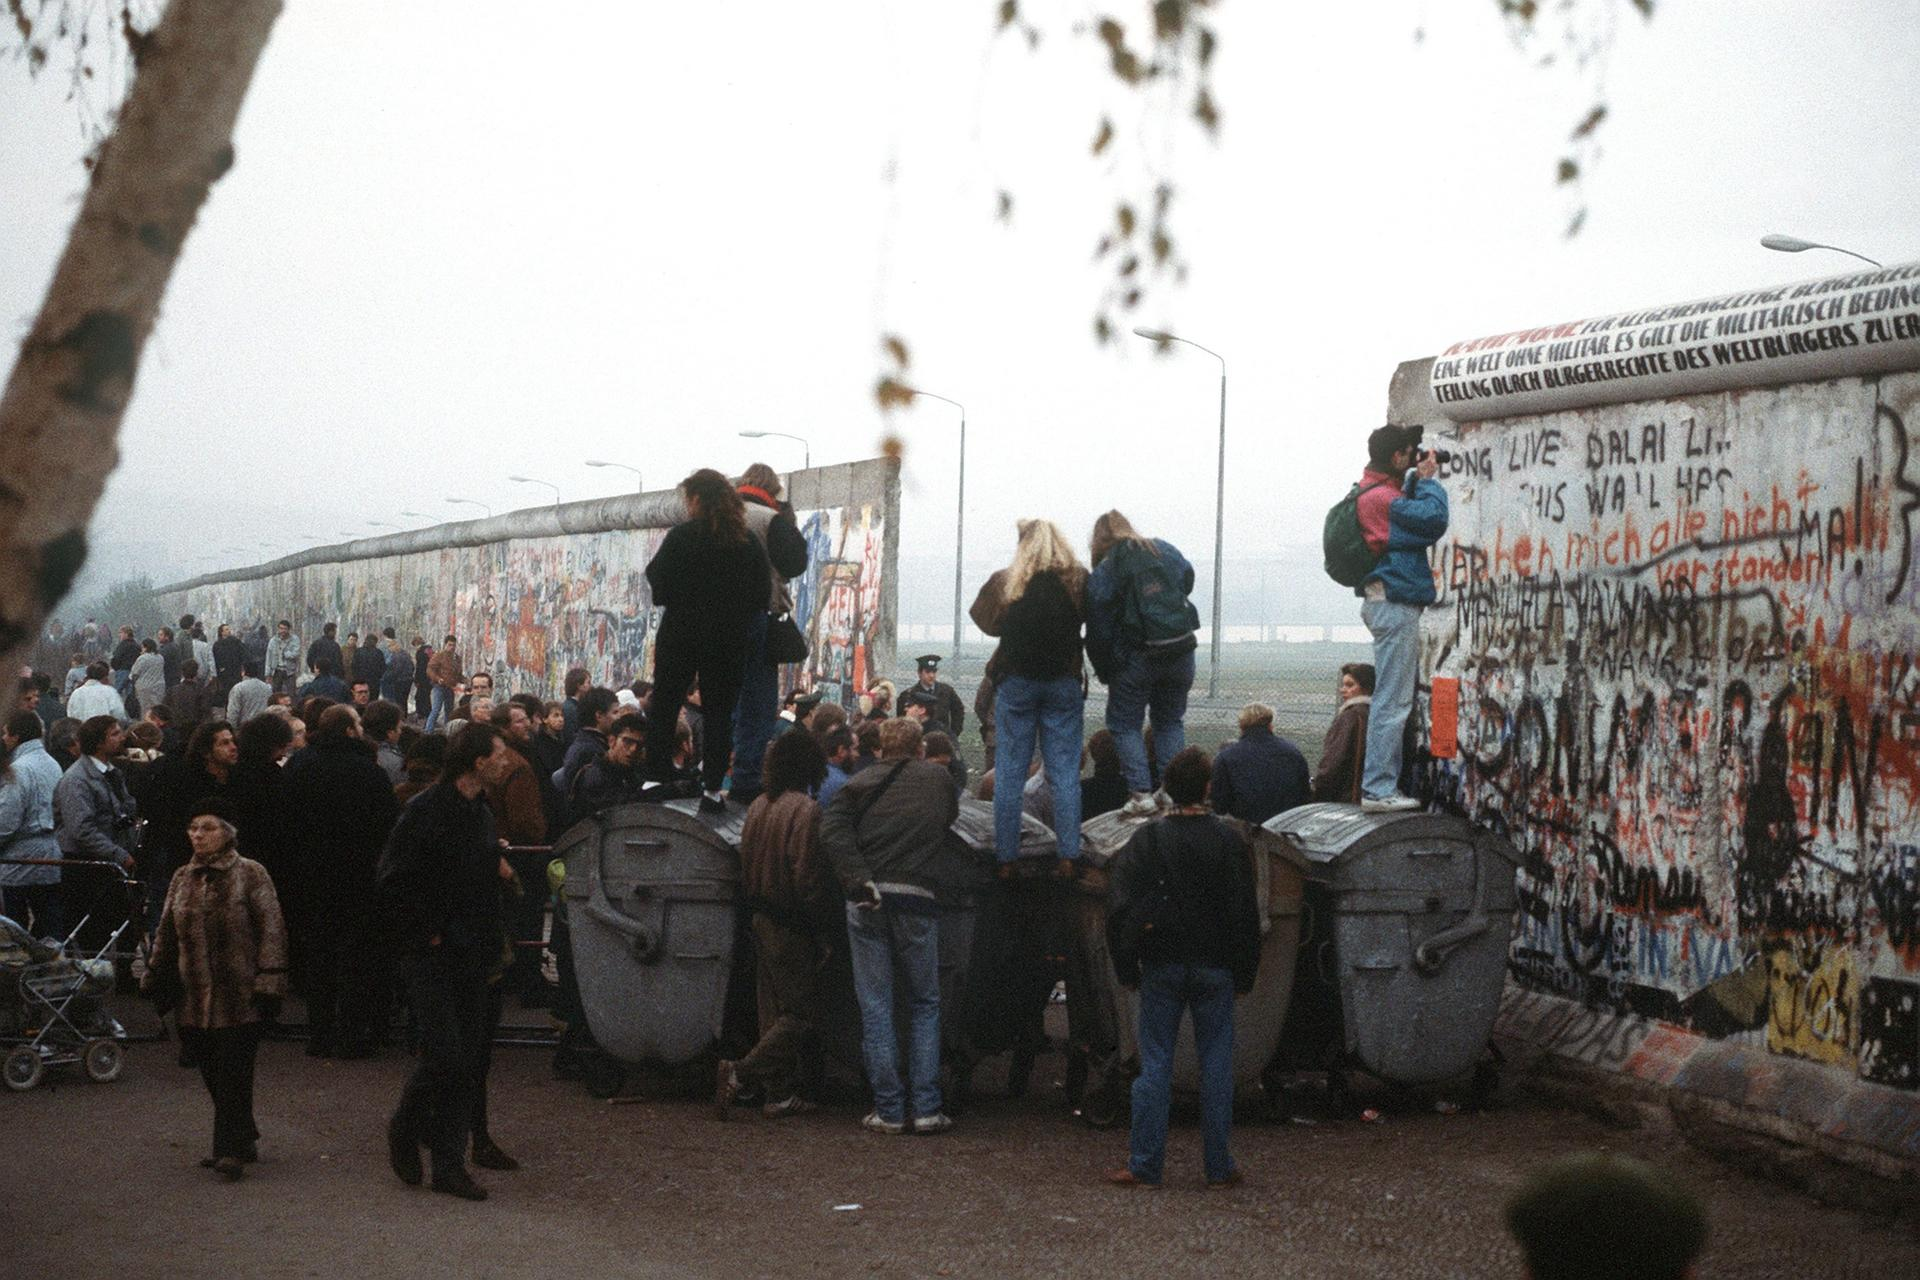 West German citizens gather at a newly created opening in the Berlin Wall at Potsdamer Platz in November 1989. Photo: US Department of Defense